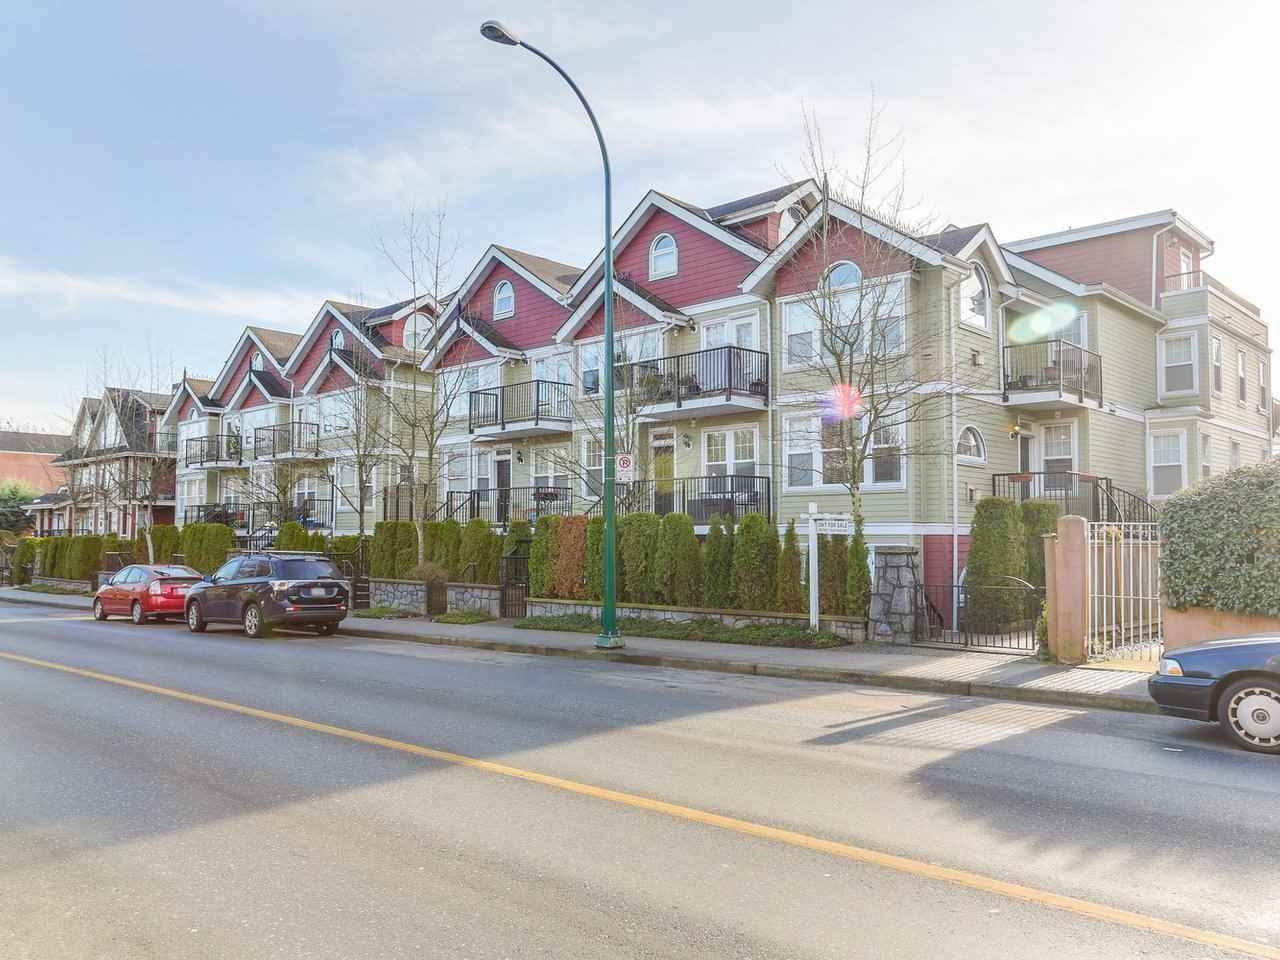 """Main Photo: 972 W 16TH Avenue in Vancouver: Cambie Townhouse for sale in """"Westhaven"""" (Vancouver West)  : MLS®# R2228772"""